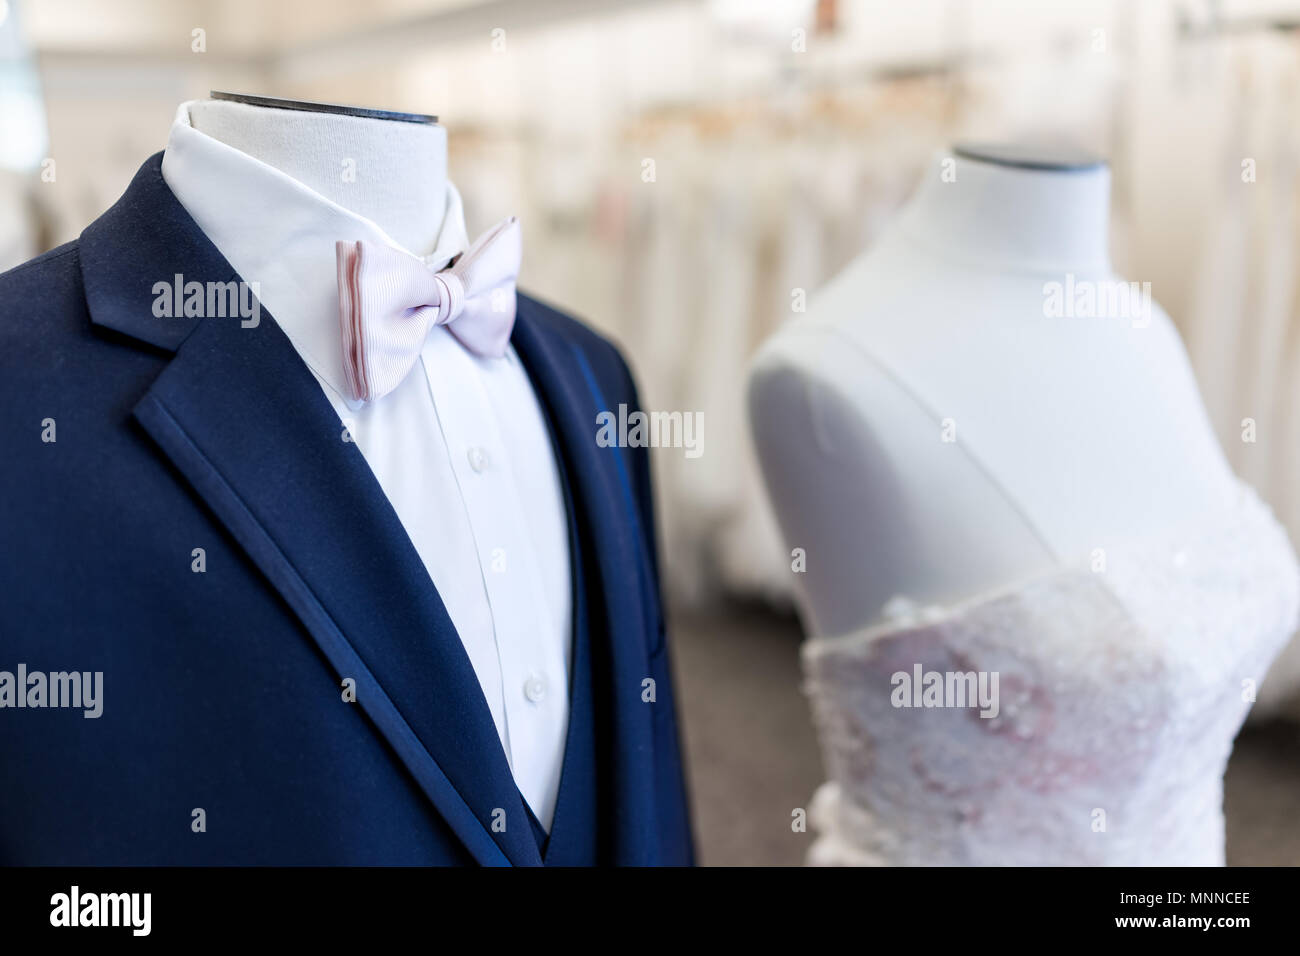 Closeup of bride and groom mannequin in blue, pink wedding attire suit, butterfly necktie, tie and white gown in boutique store, shop - Stock Image